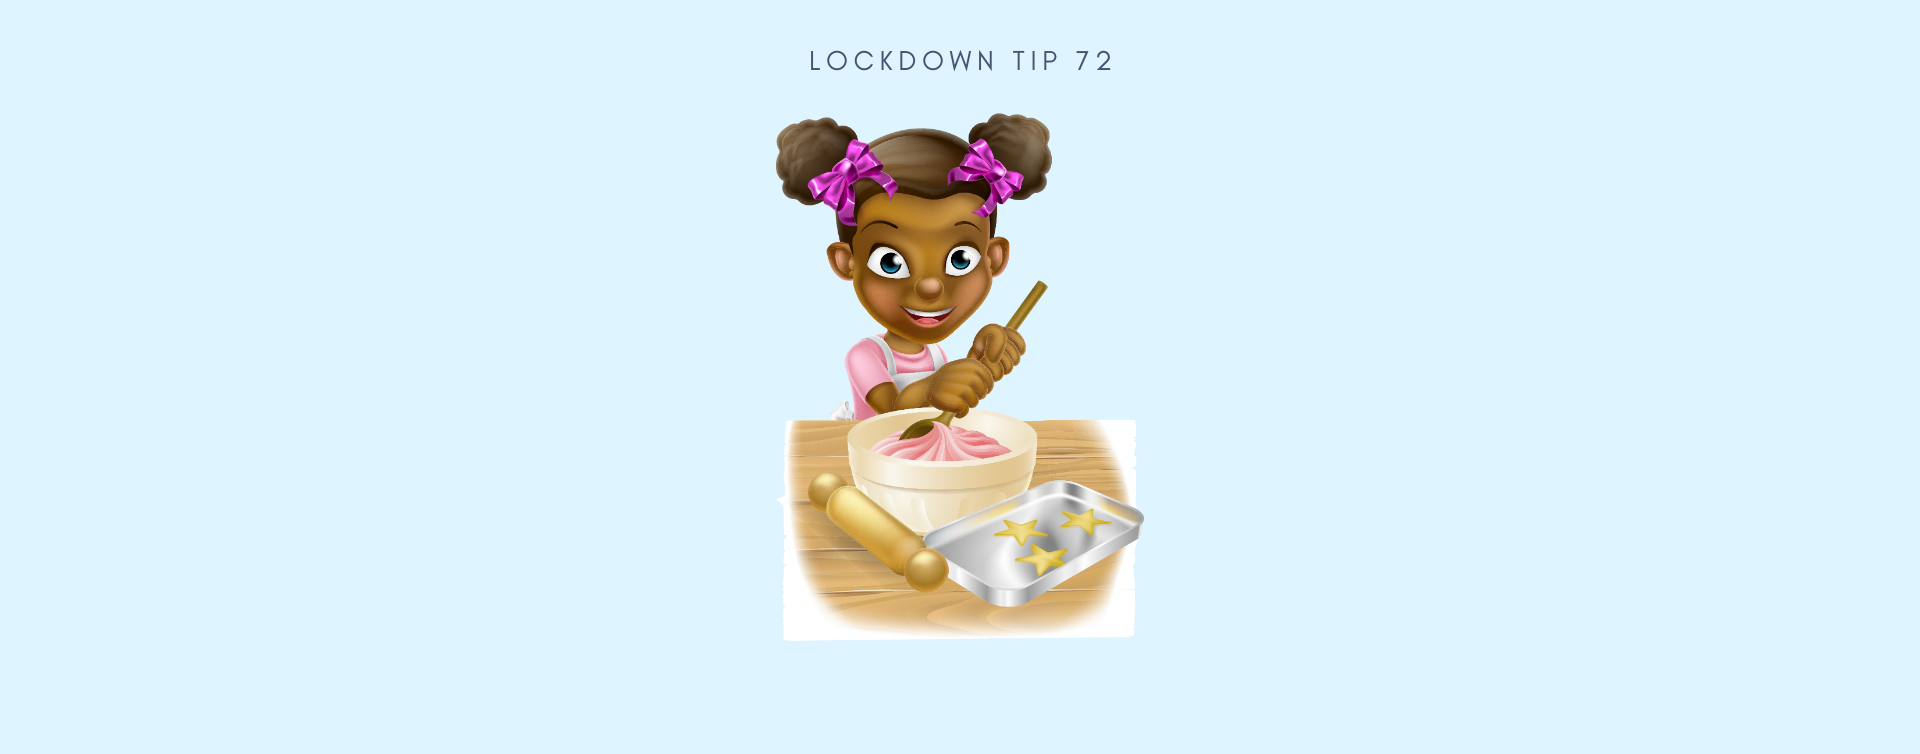 MCSA Lockdown Tip 72